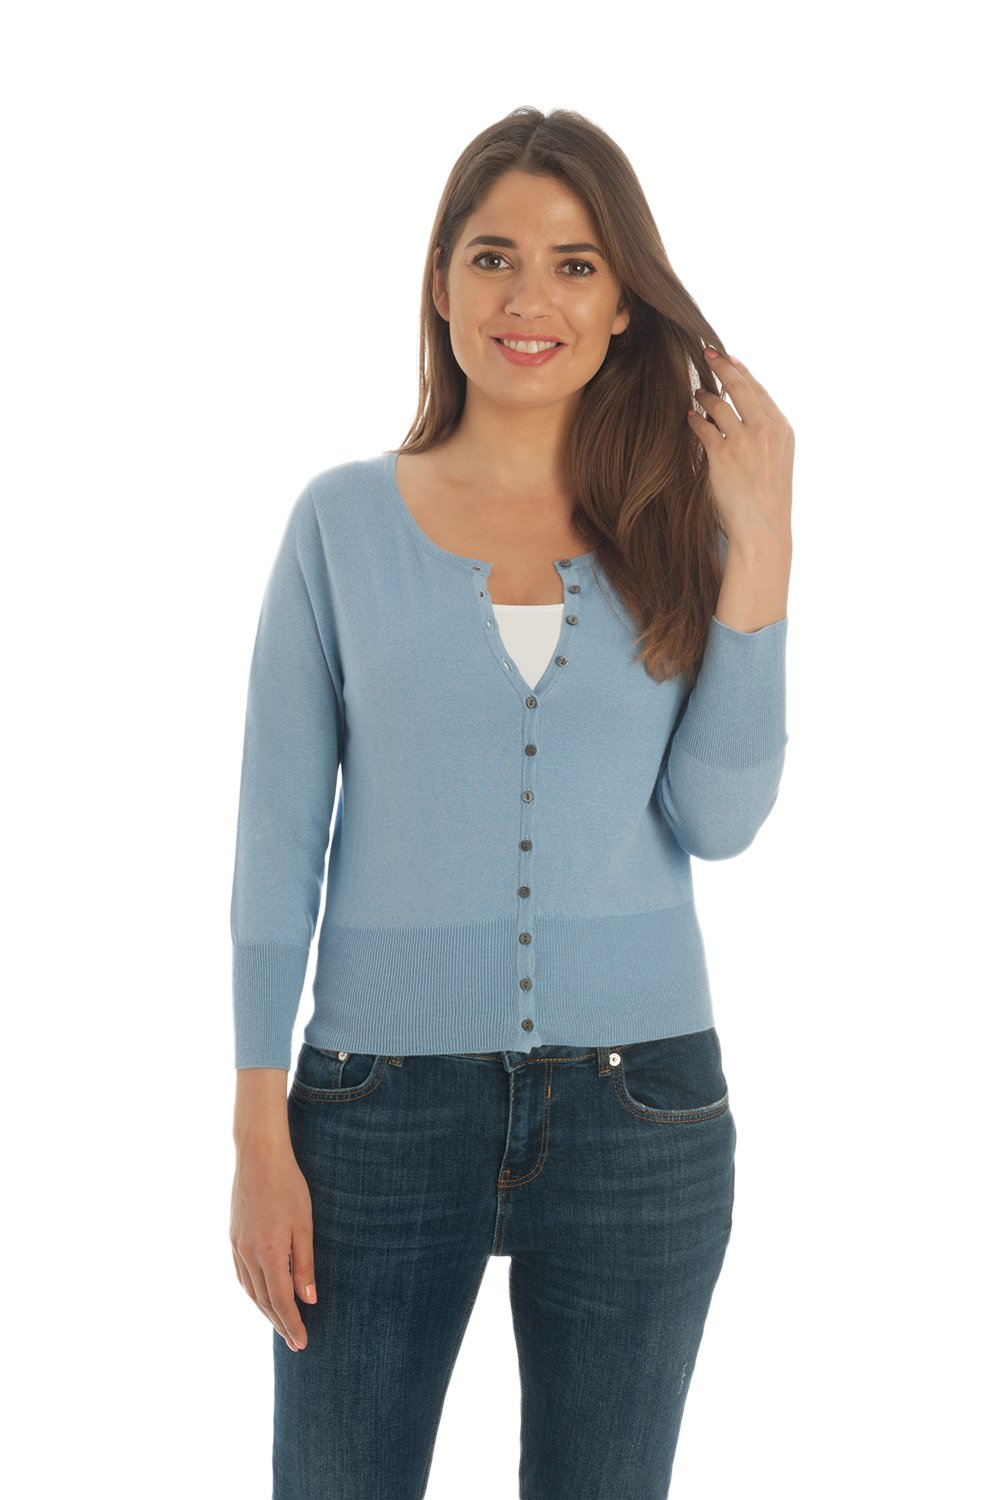 Adorawool - Cardigan Sweater for Women - Luxury Silk & Cotton - Button Down - Cropped Crew - 3/4 Sleeve - Maya Blue - Size Large by Adorawool (Image #2)